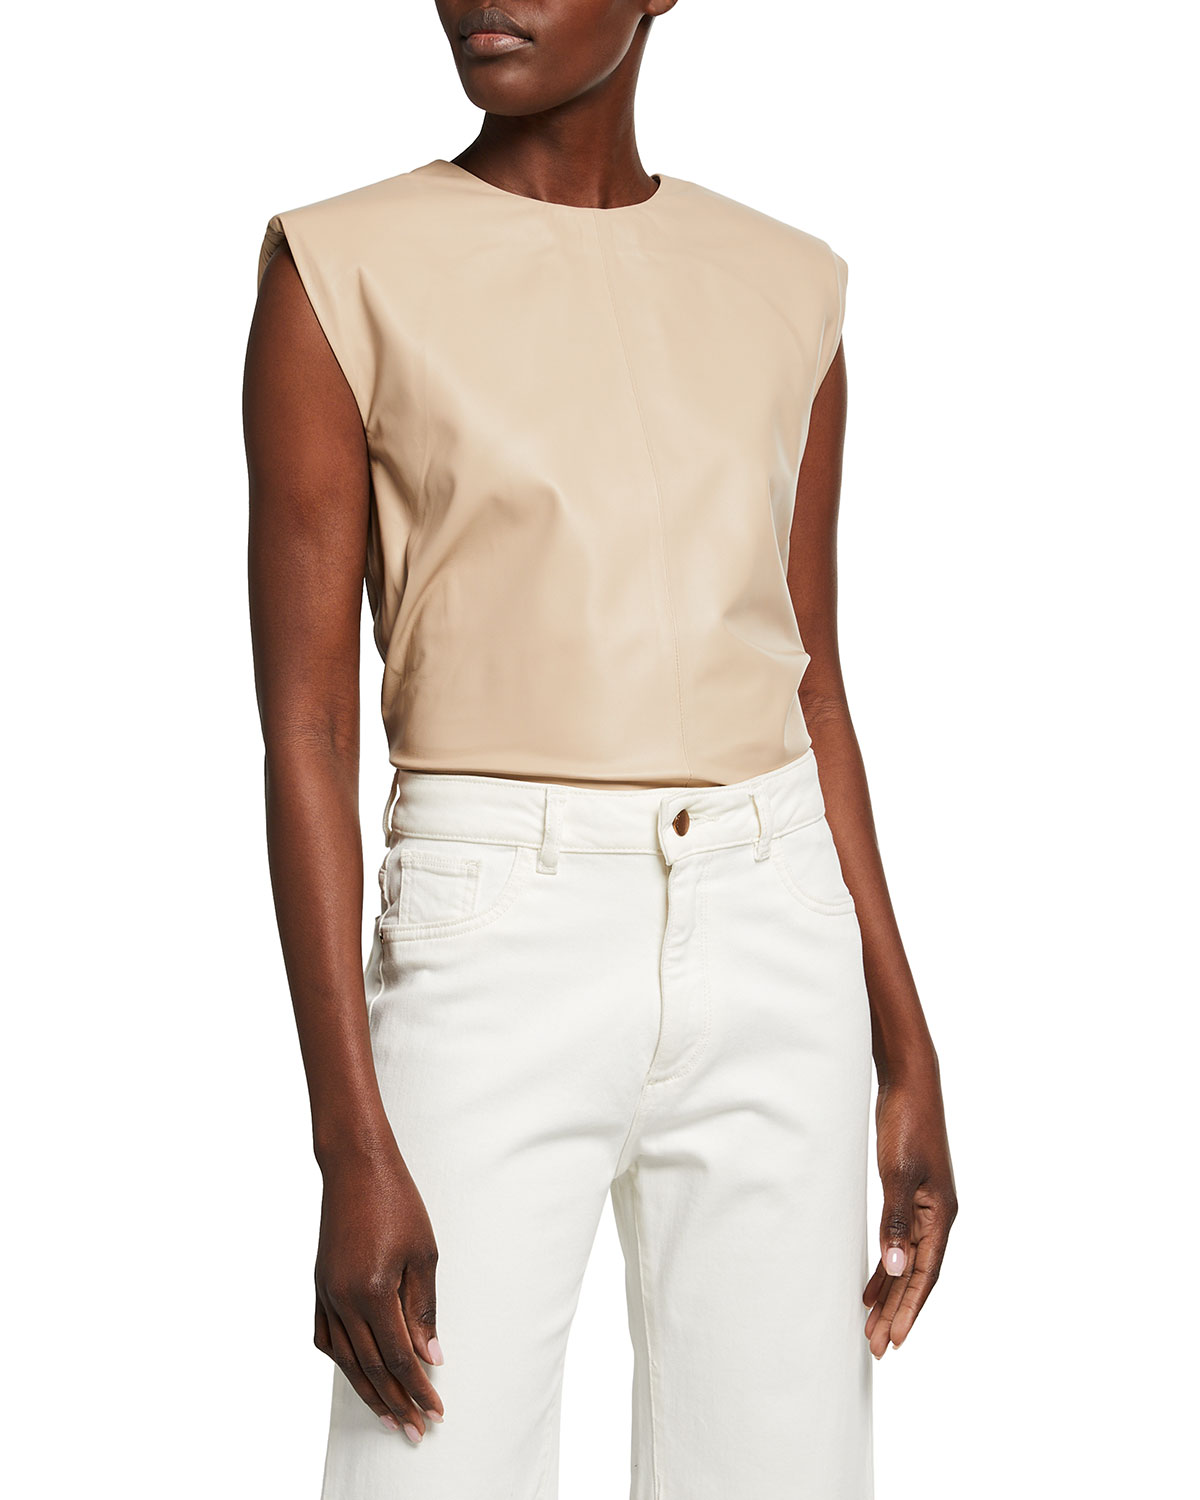 Maren Leather Top with Padded Shoulders